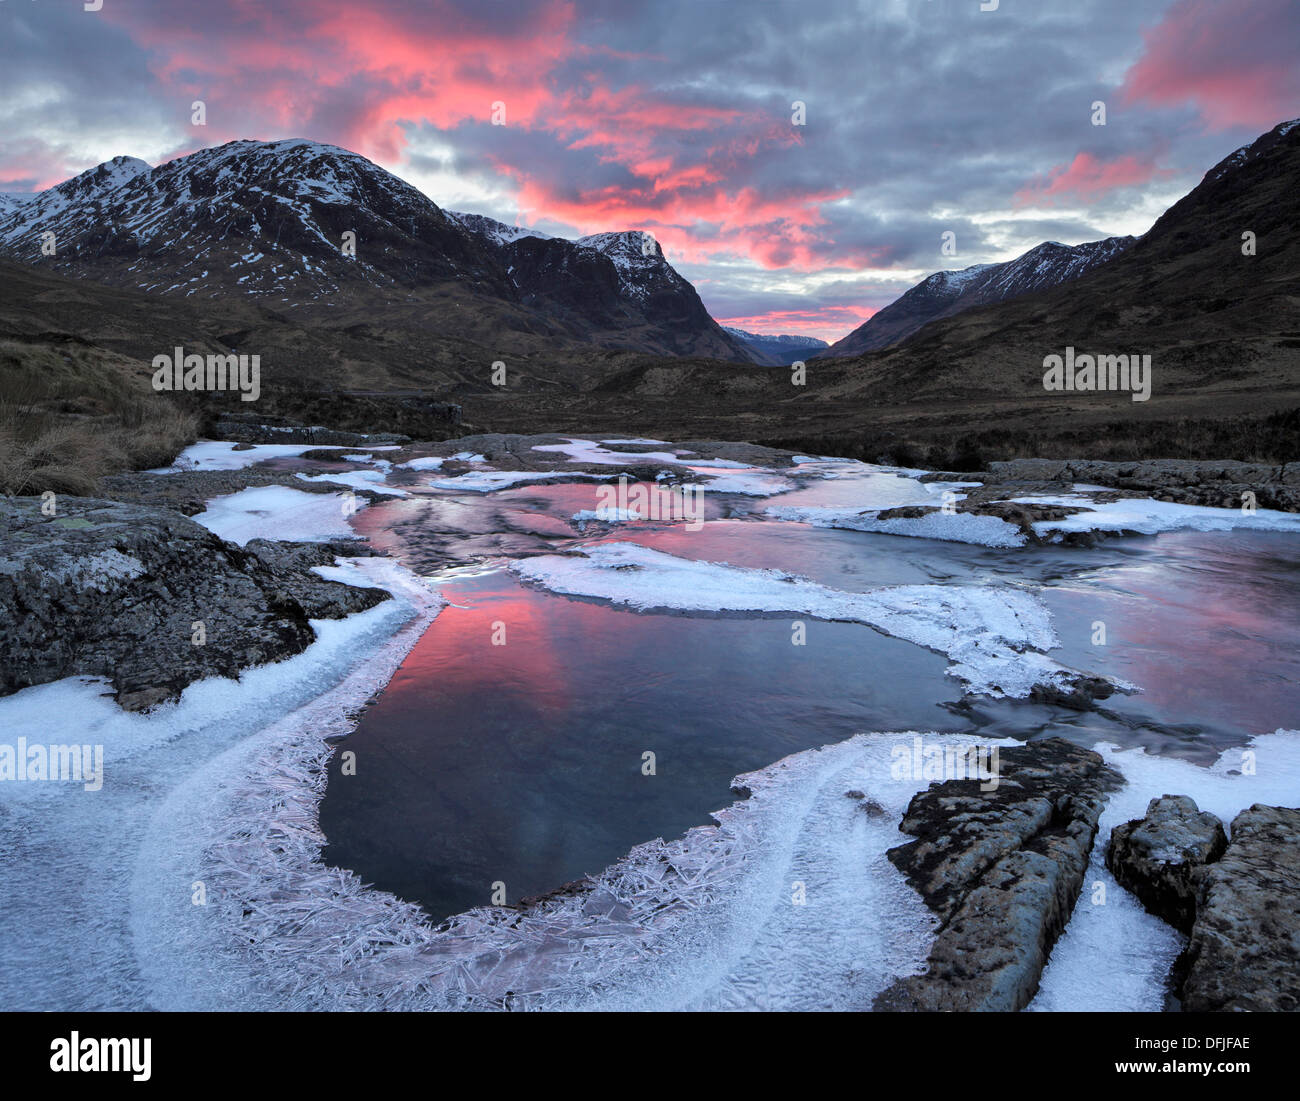 Winter sunset over the Pass of Glencoe in the Highlands of Scotland - Stock Image